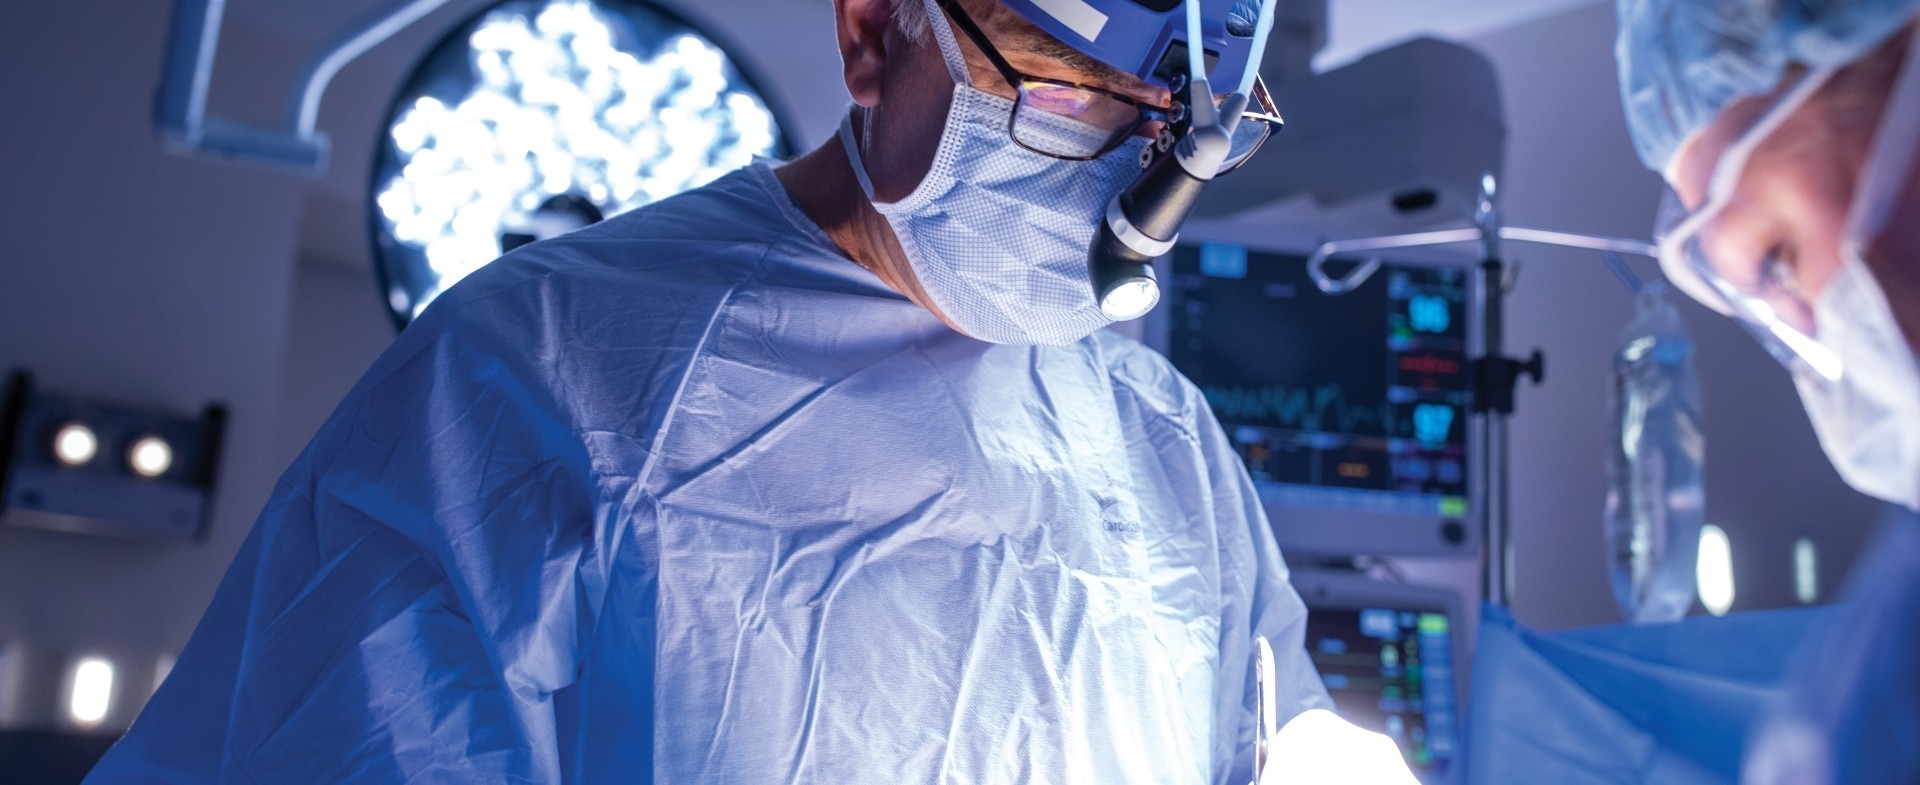 close up image of a TGH surgeon performing surgery